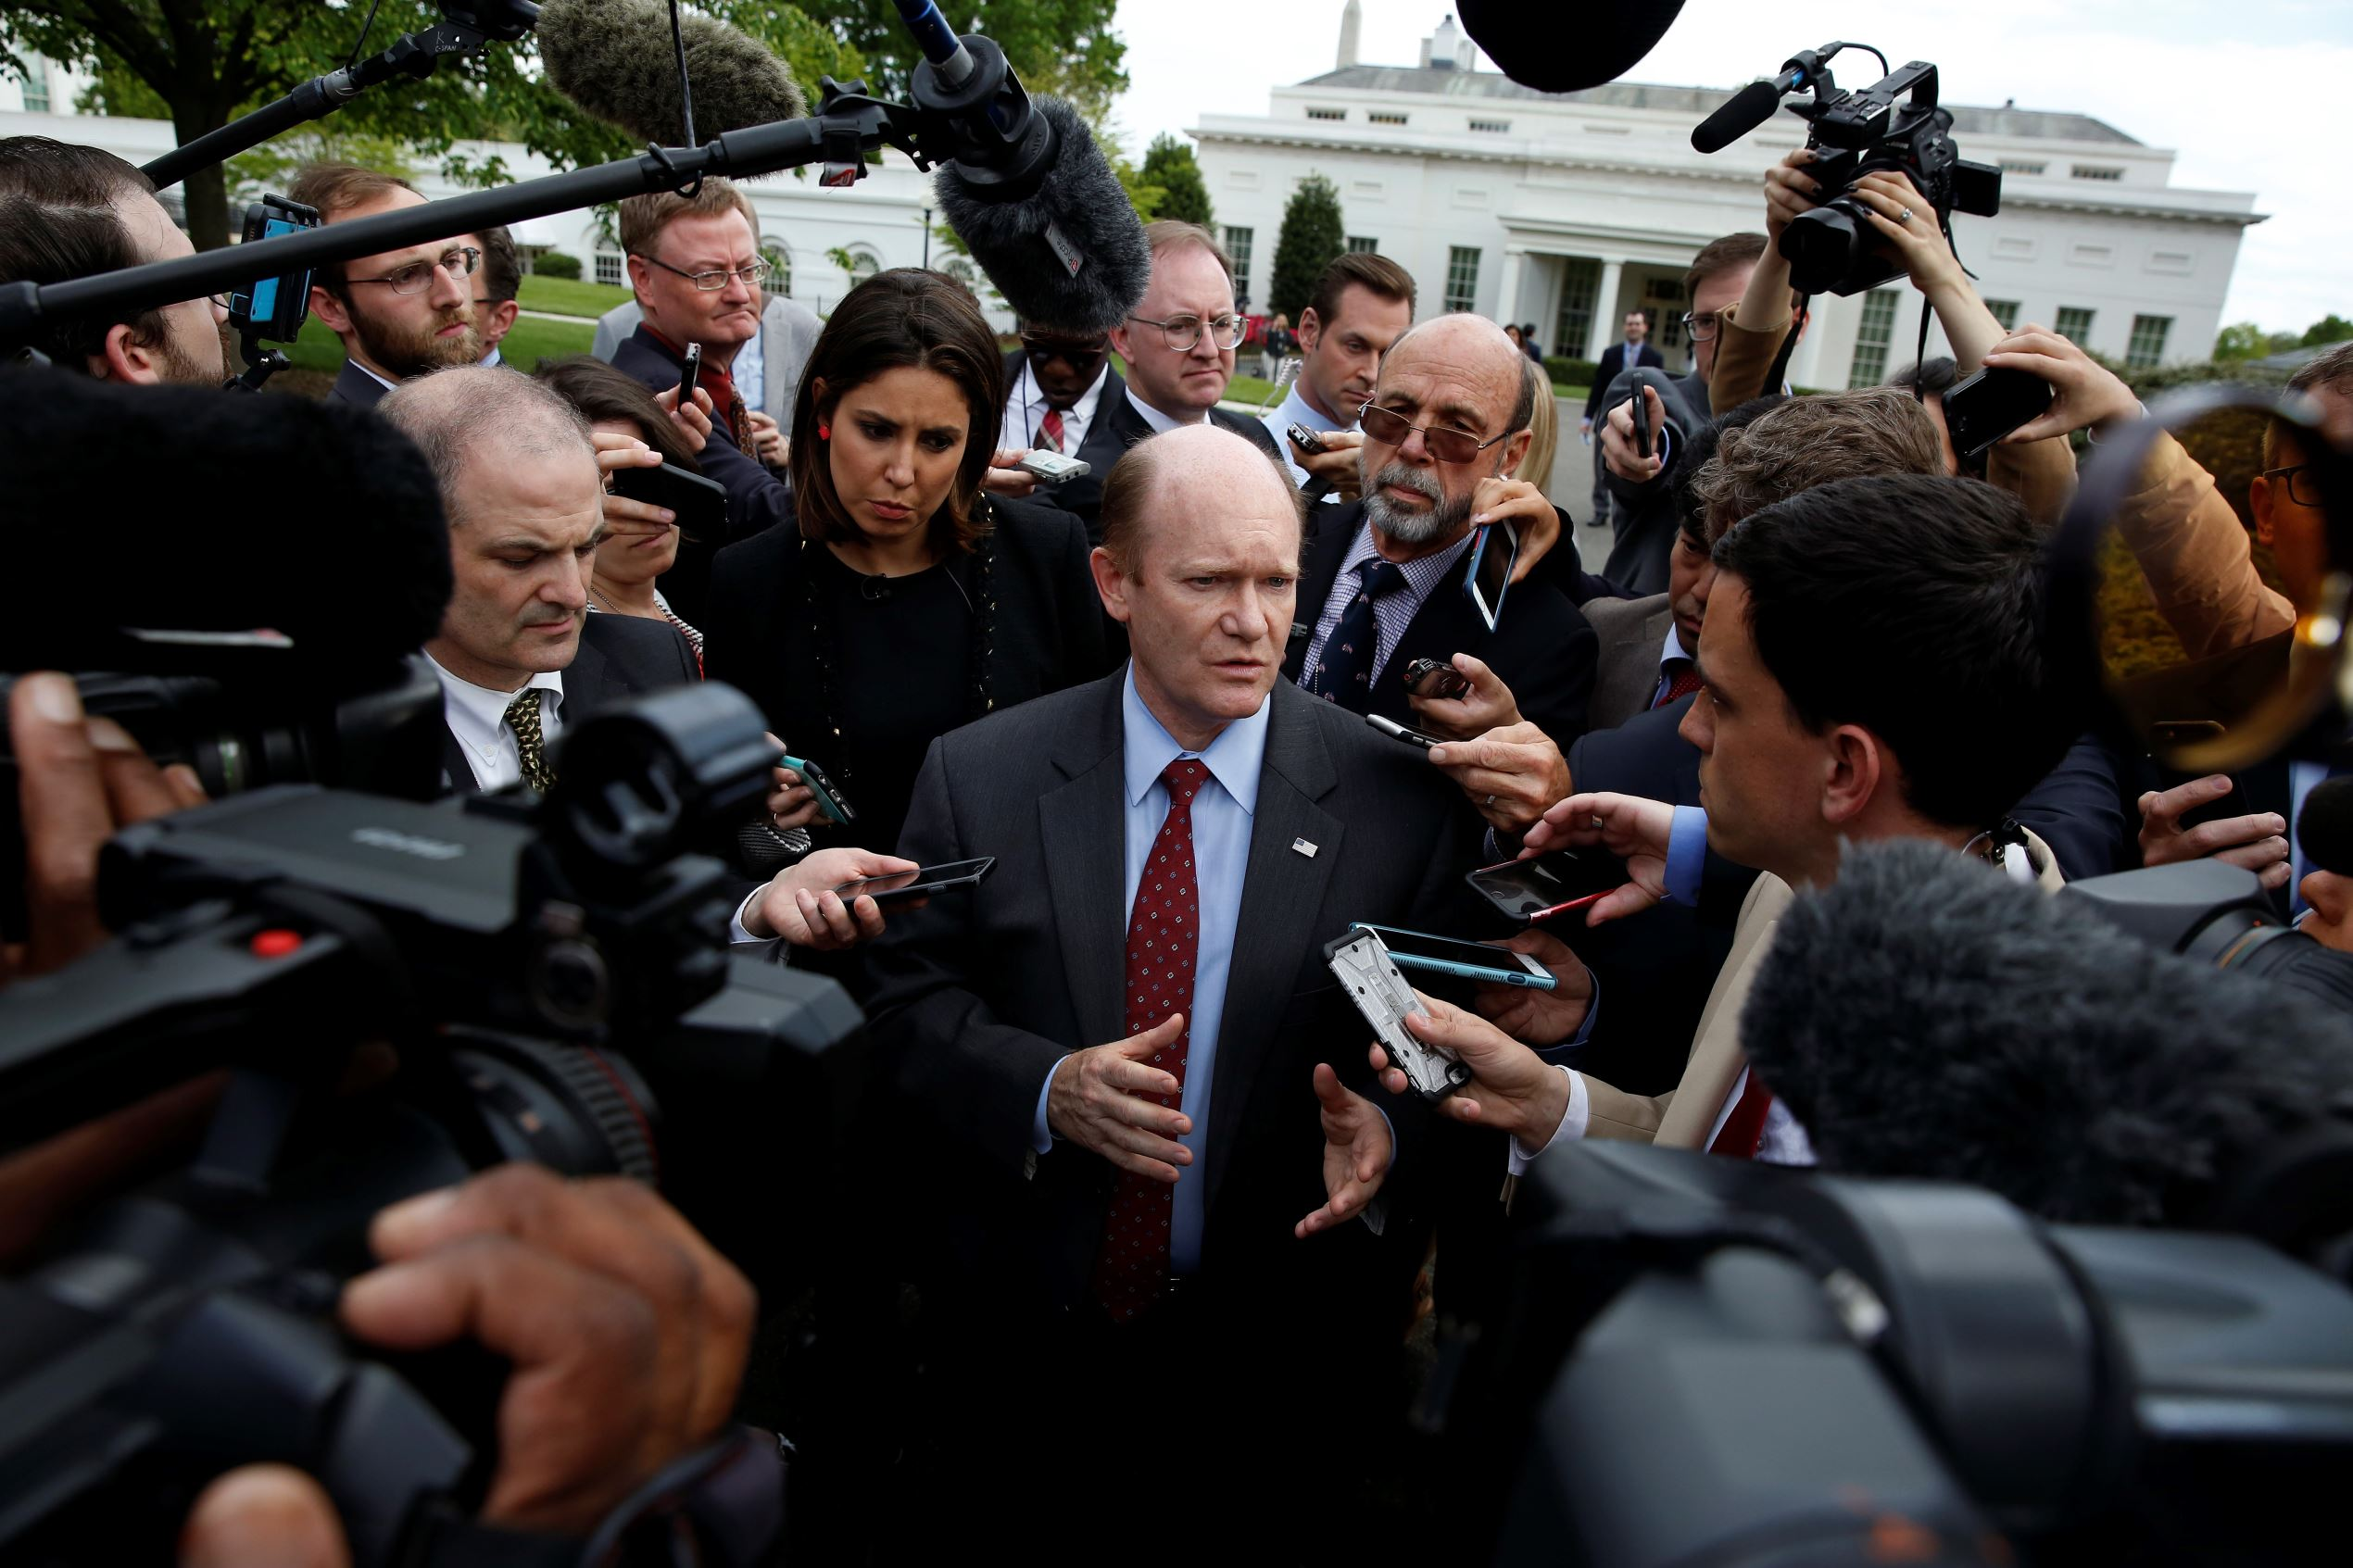 Sen. Chris Coons, D-Del., talks with reporters after an all Senators briefing on the Democratic People's Republic of Korea at the Eisenhower Executive Office Building on the White House complex, Washington, Wednesday, April, 26, 2017.